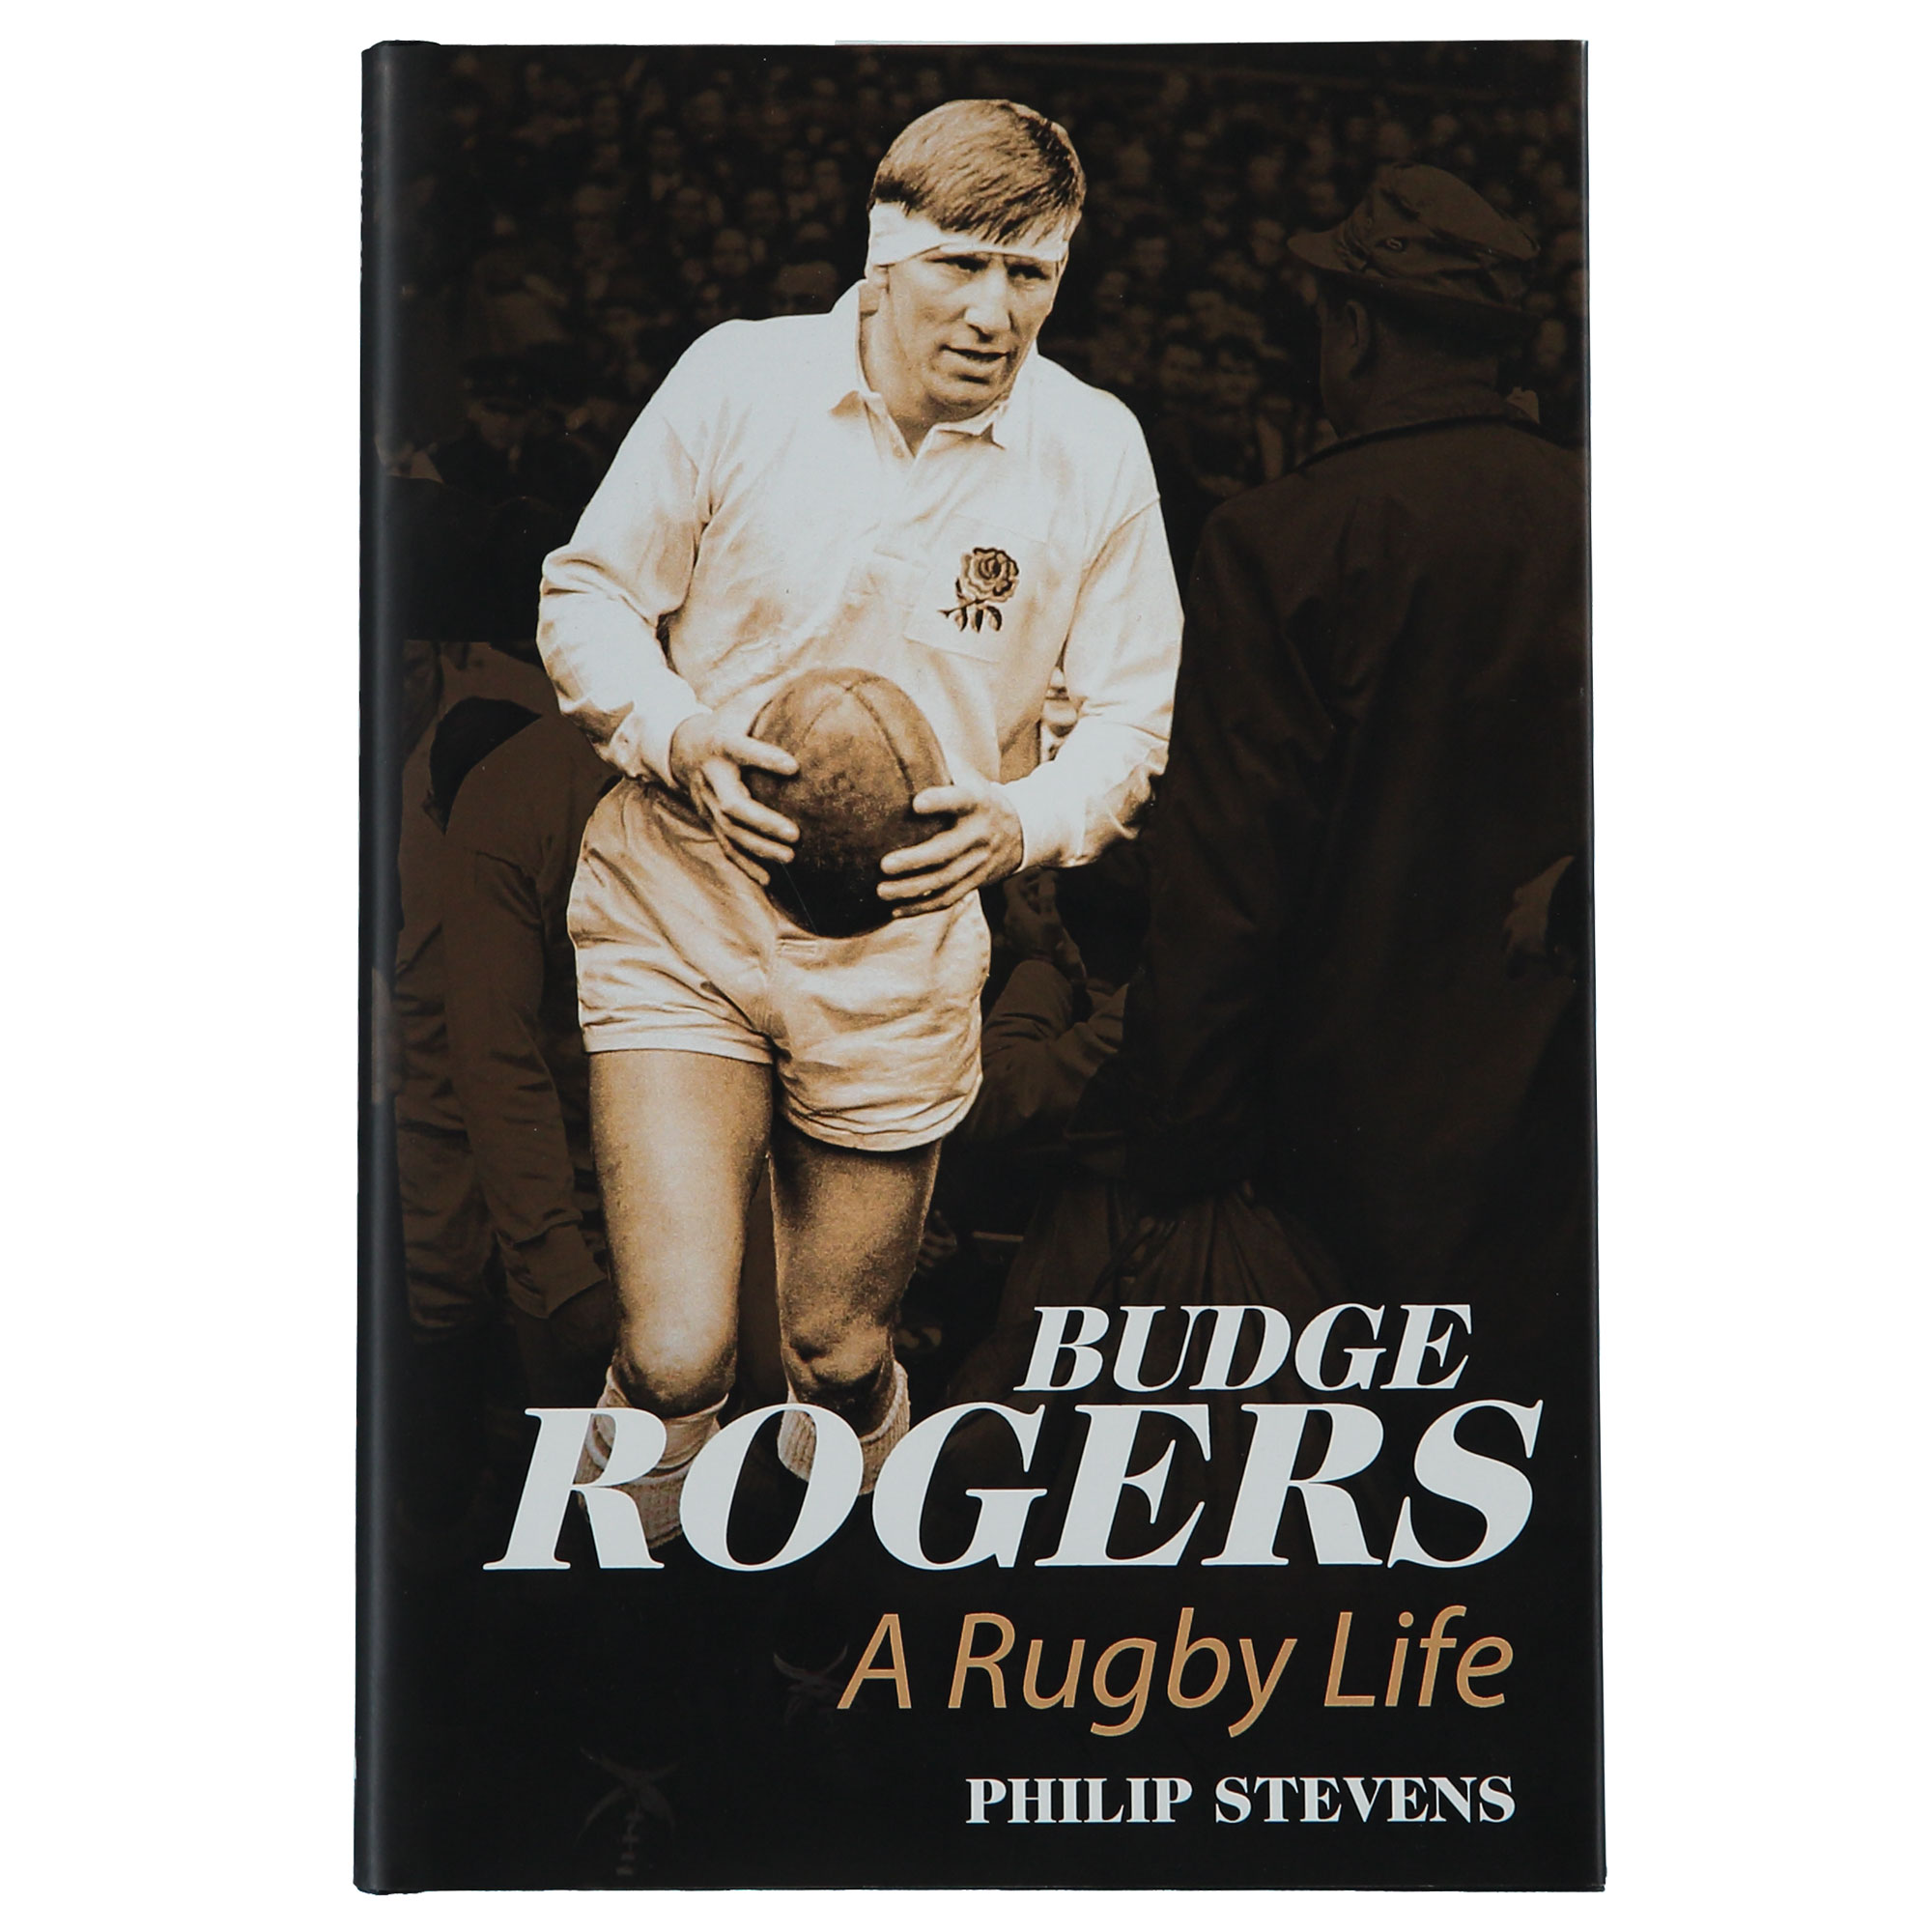 """Image of """"England Budge Rogers: A Rugby Life Hardcover"""""""